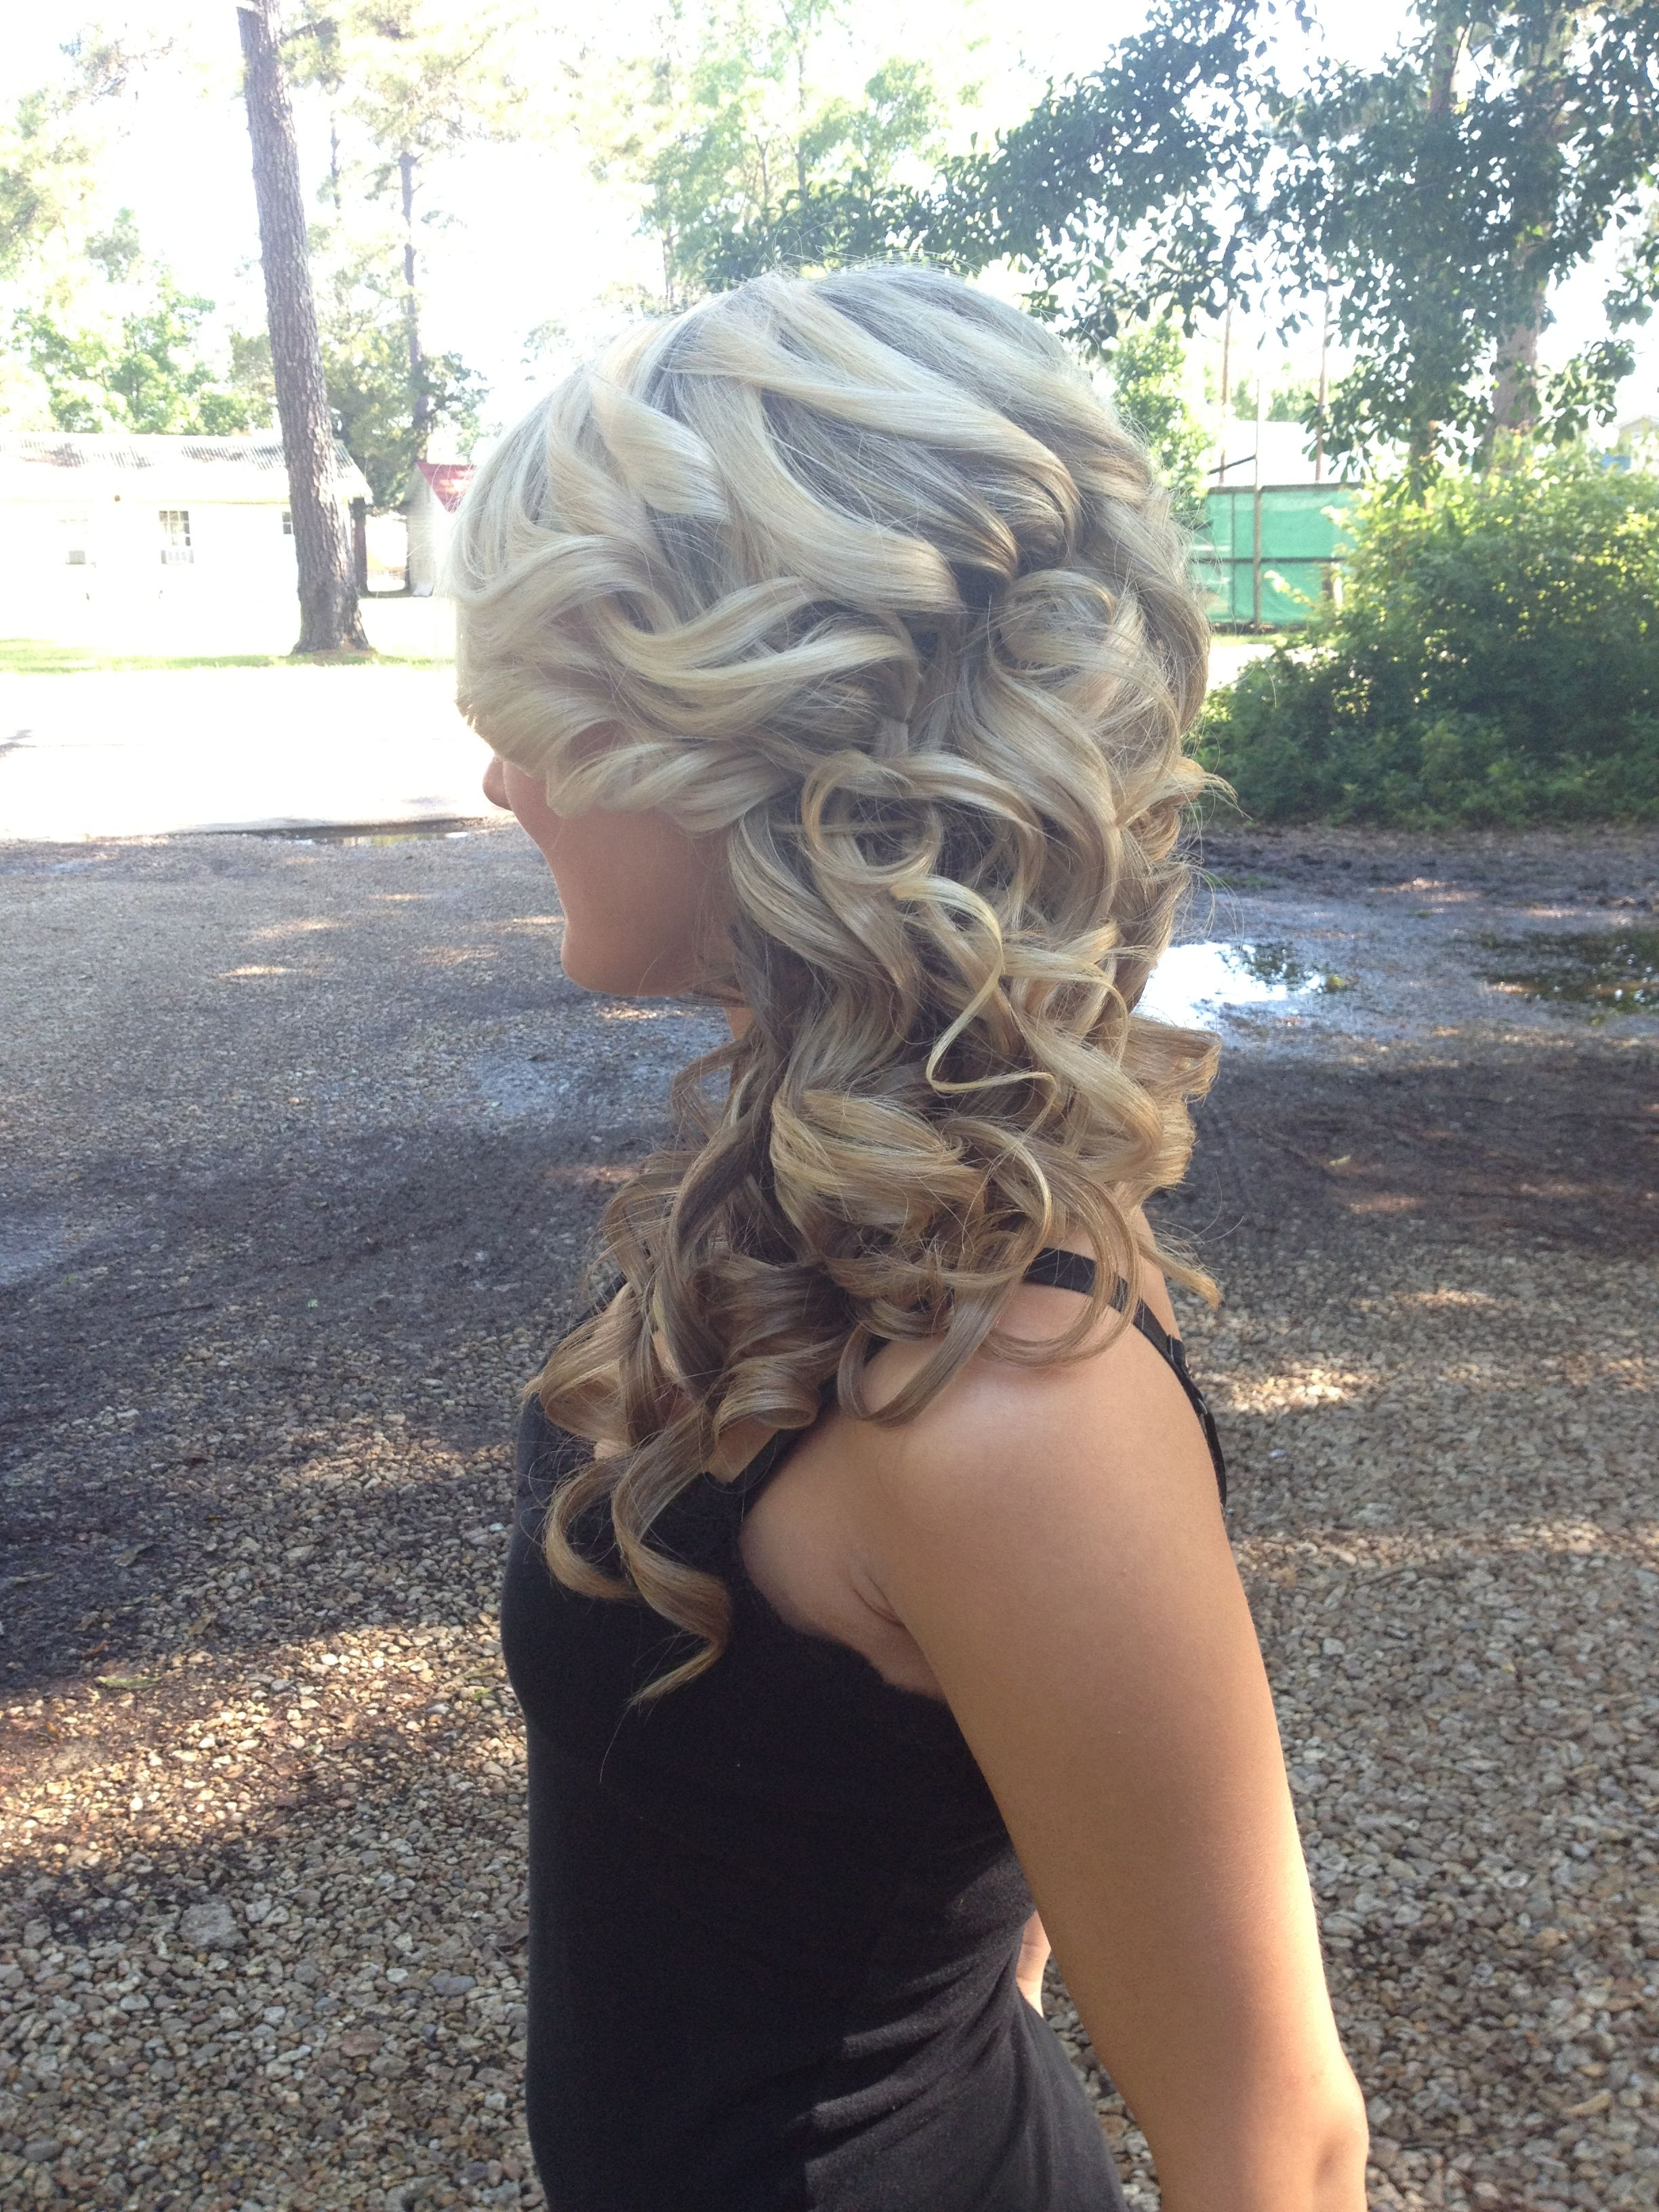 Prom hair updo curly hair blonde hair cute hairstyles prom